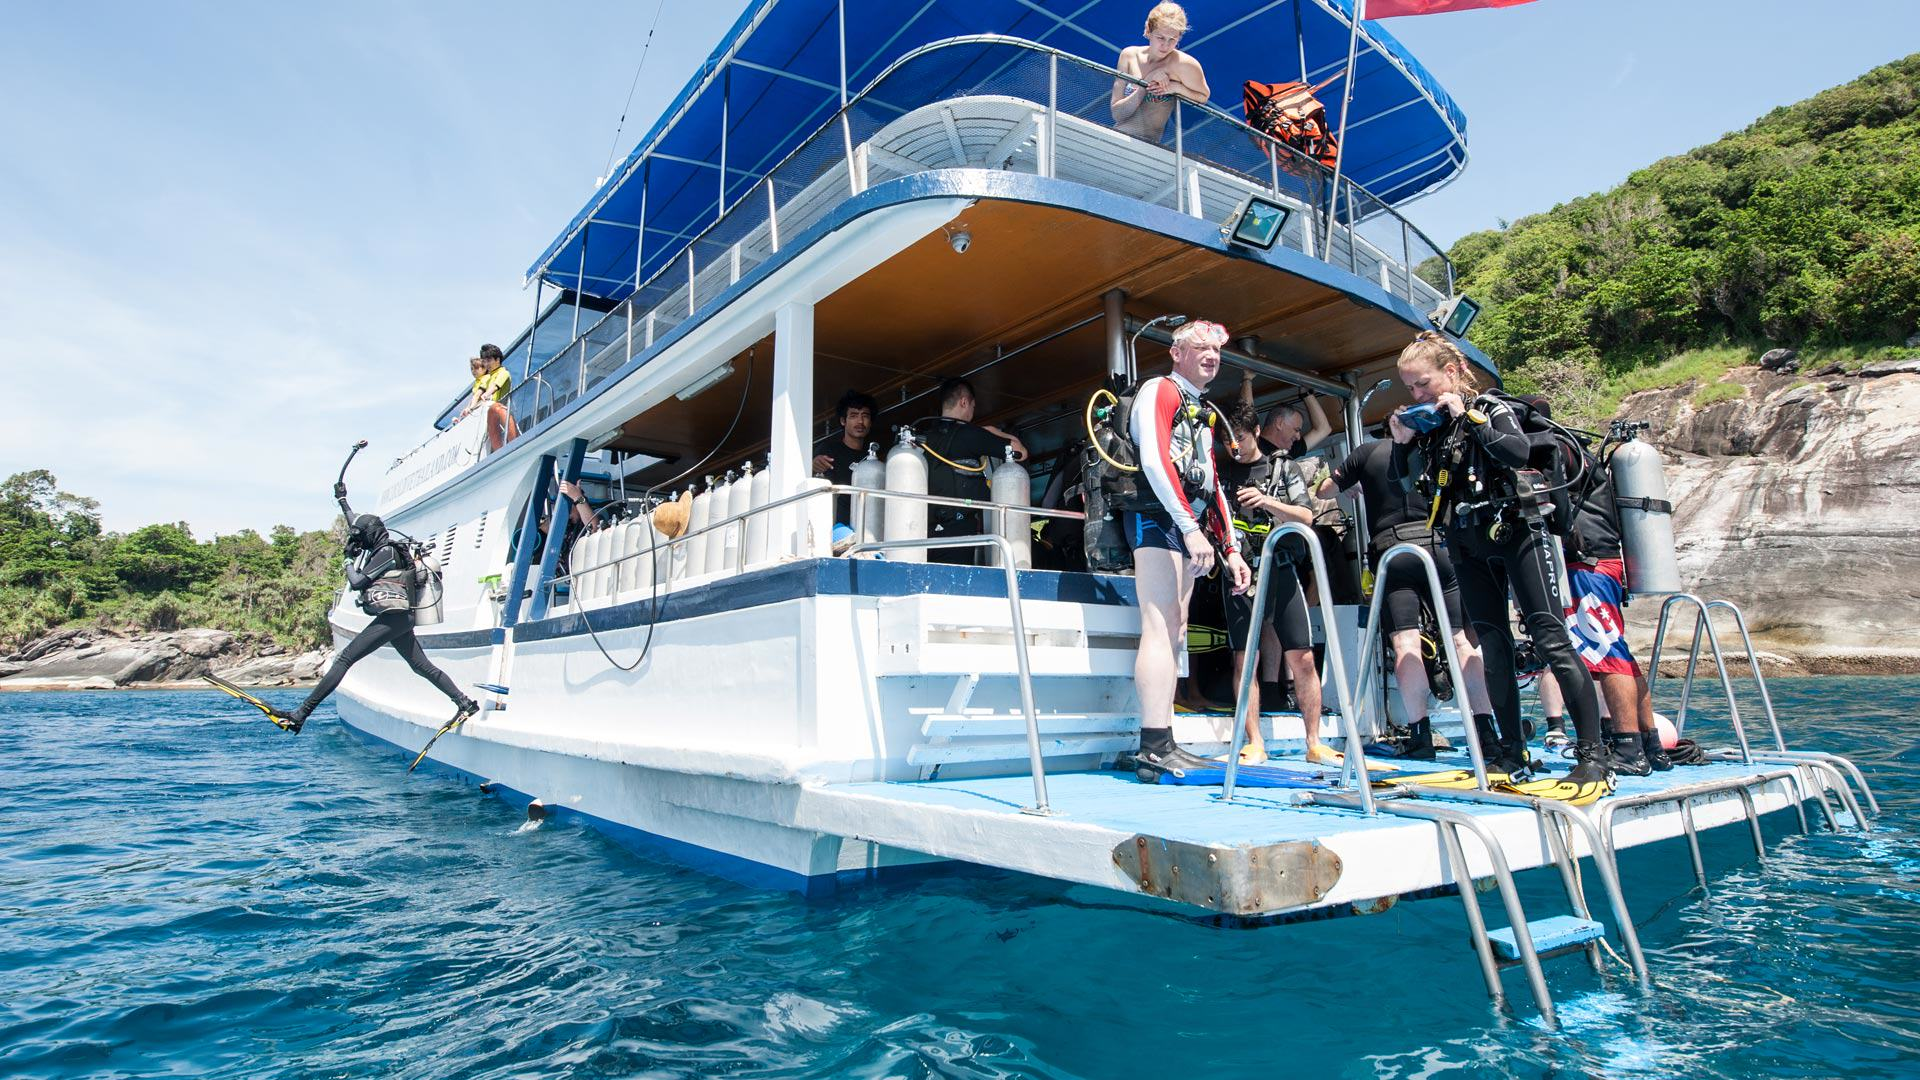 M/V Kepsub – Phuket Diving Tours